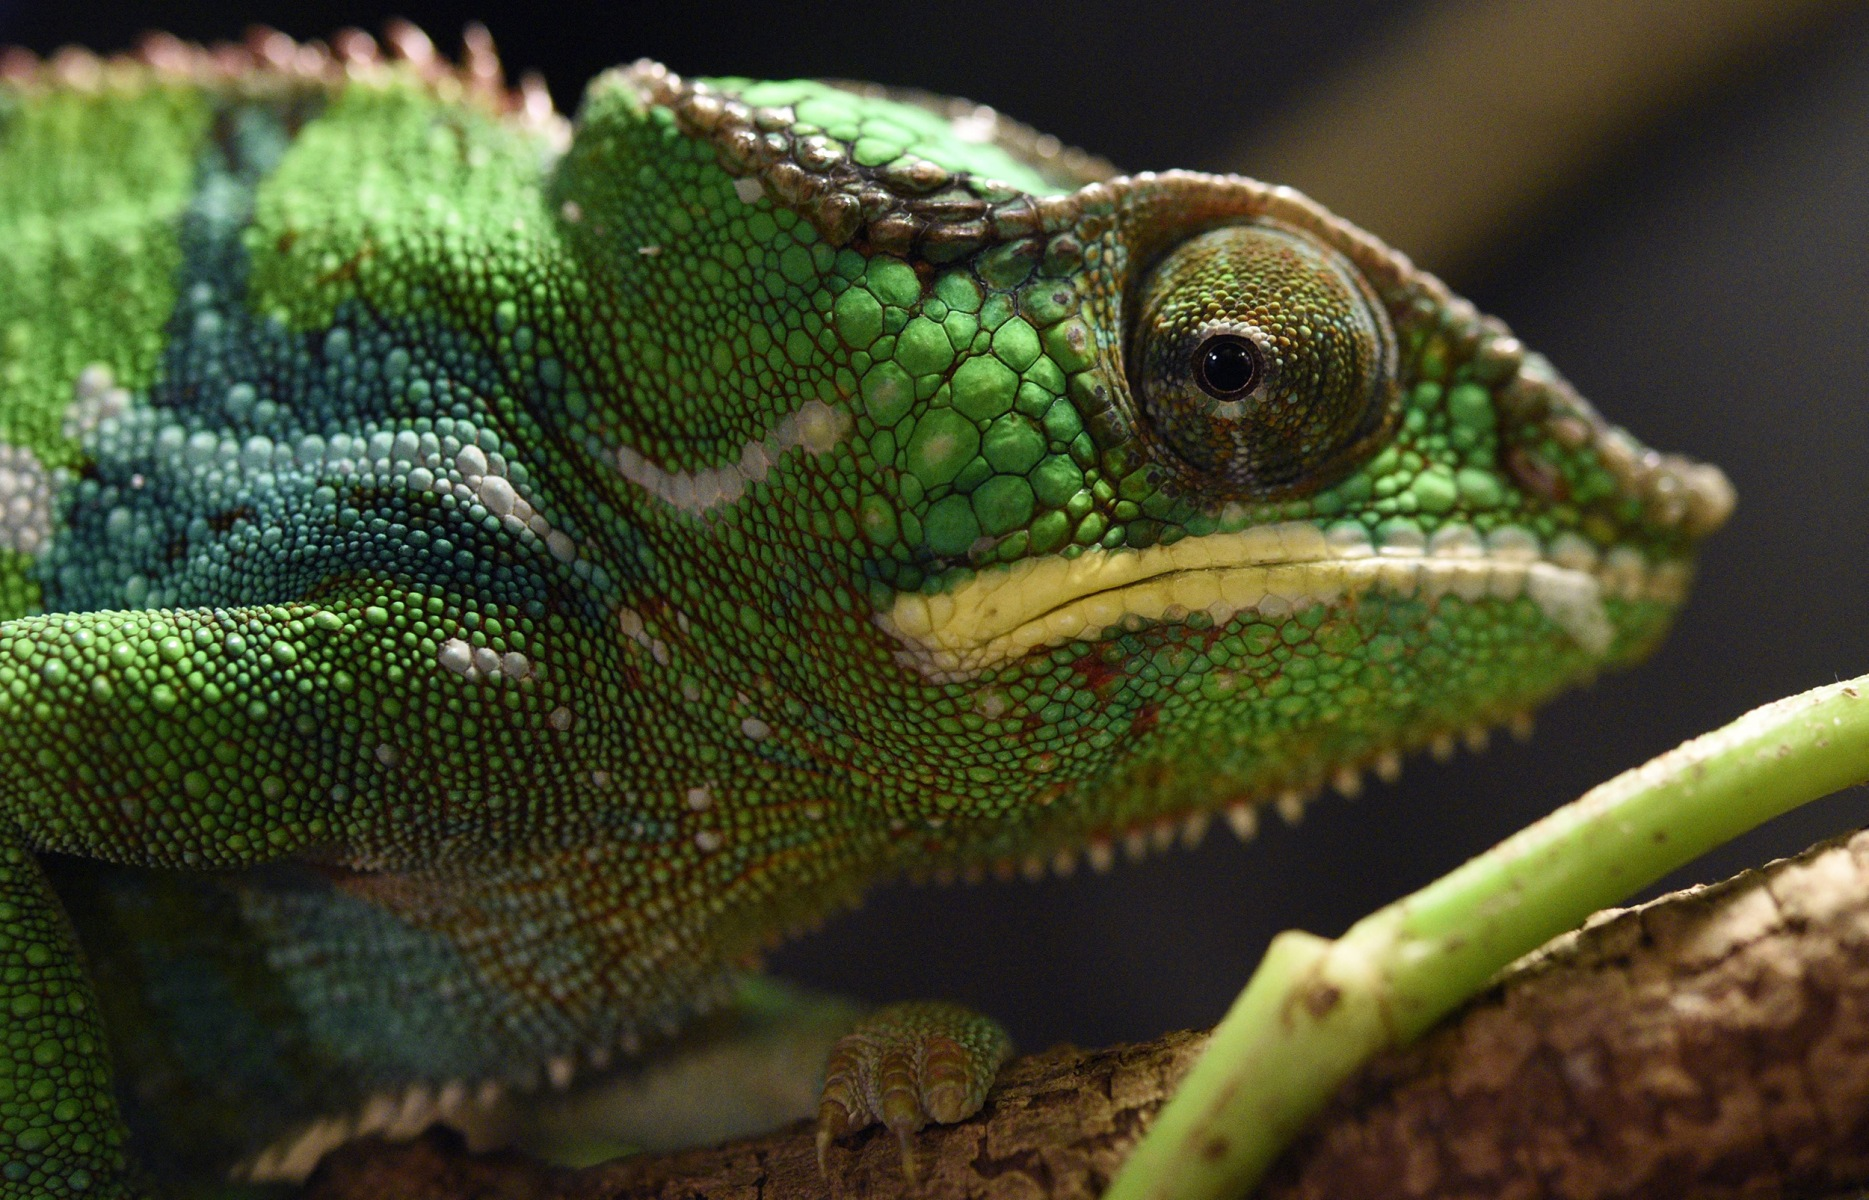 Image: Panther chameleon at the Ueno Zoological Gardens in Tokyo